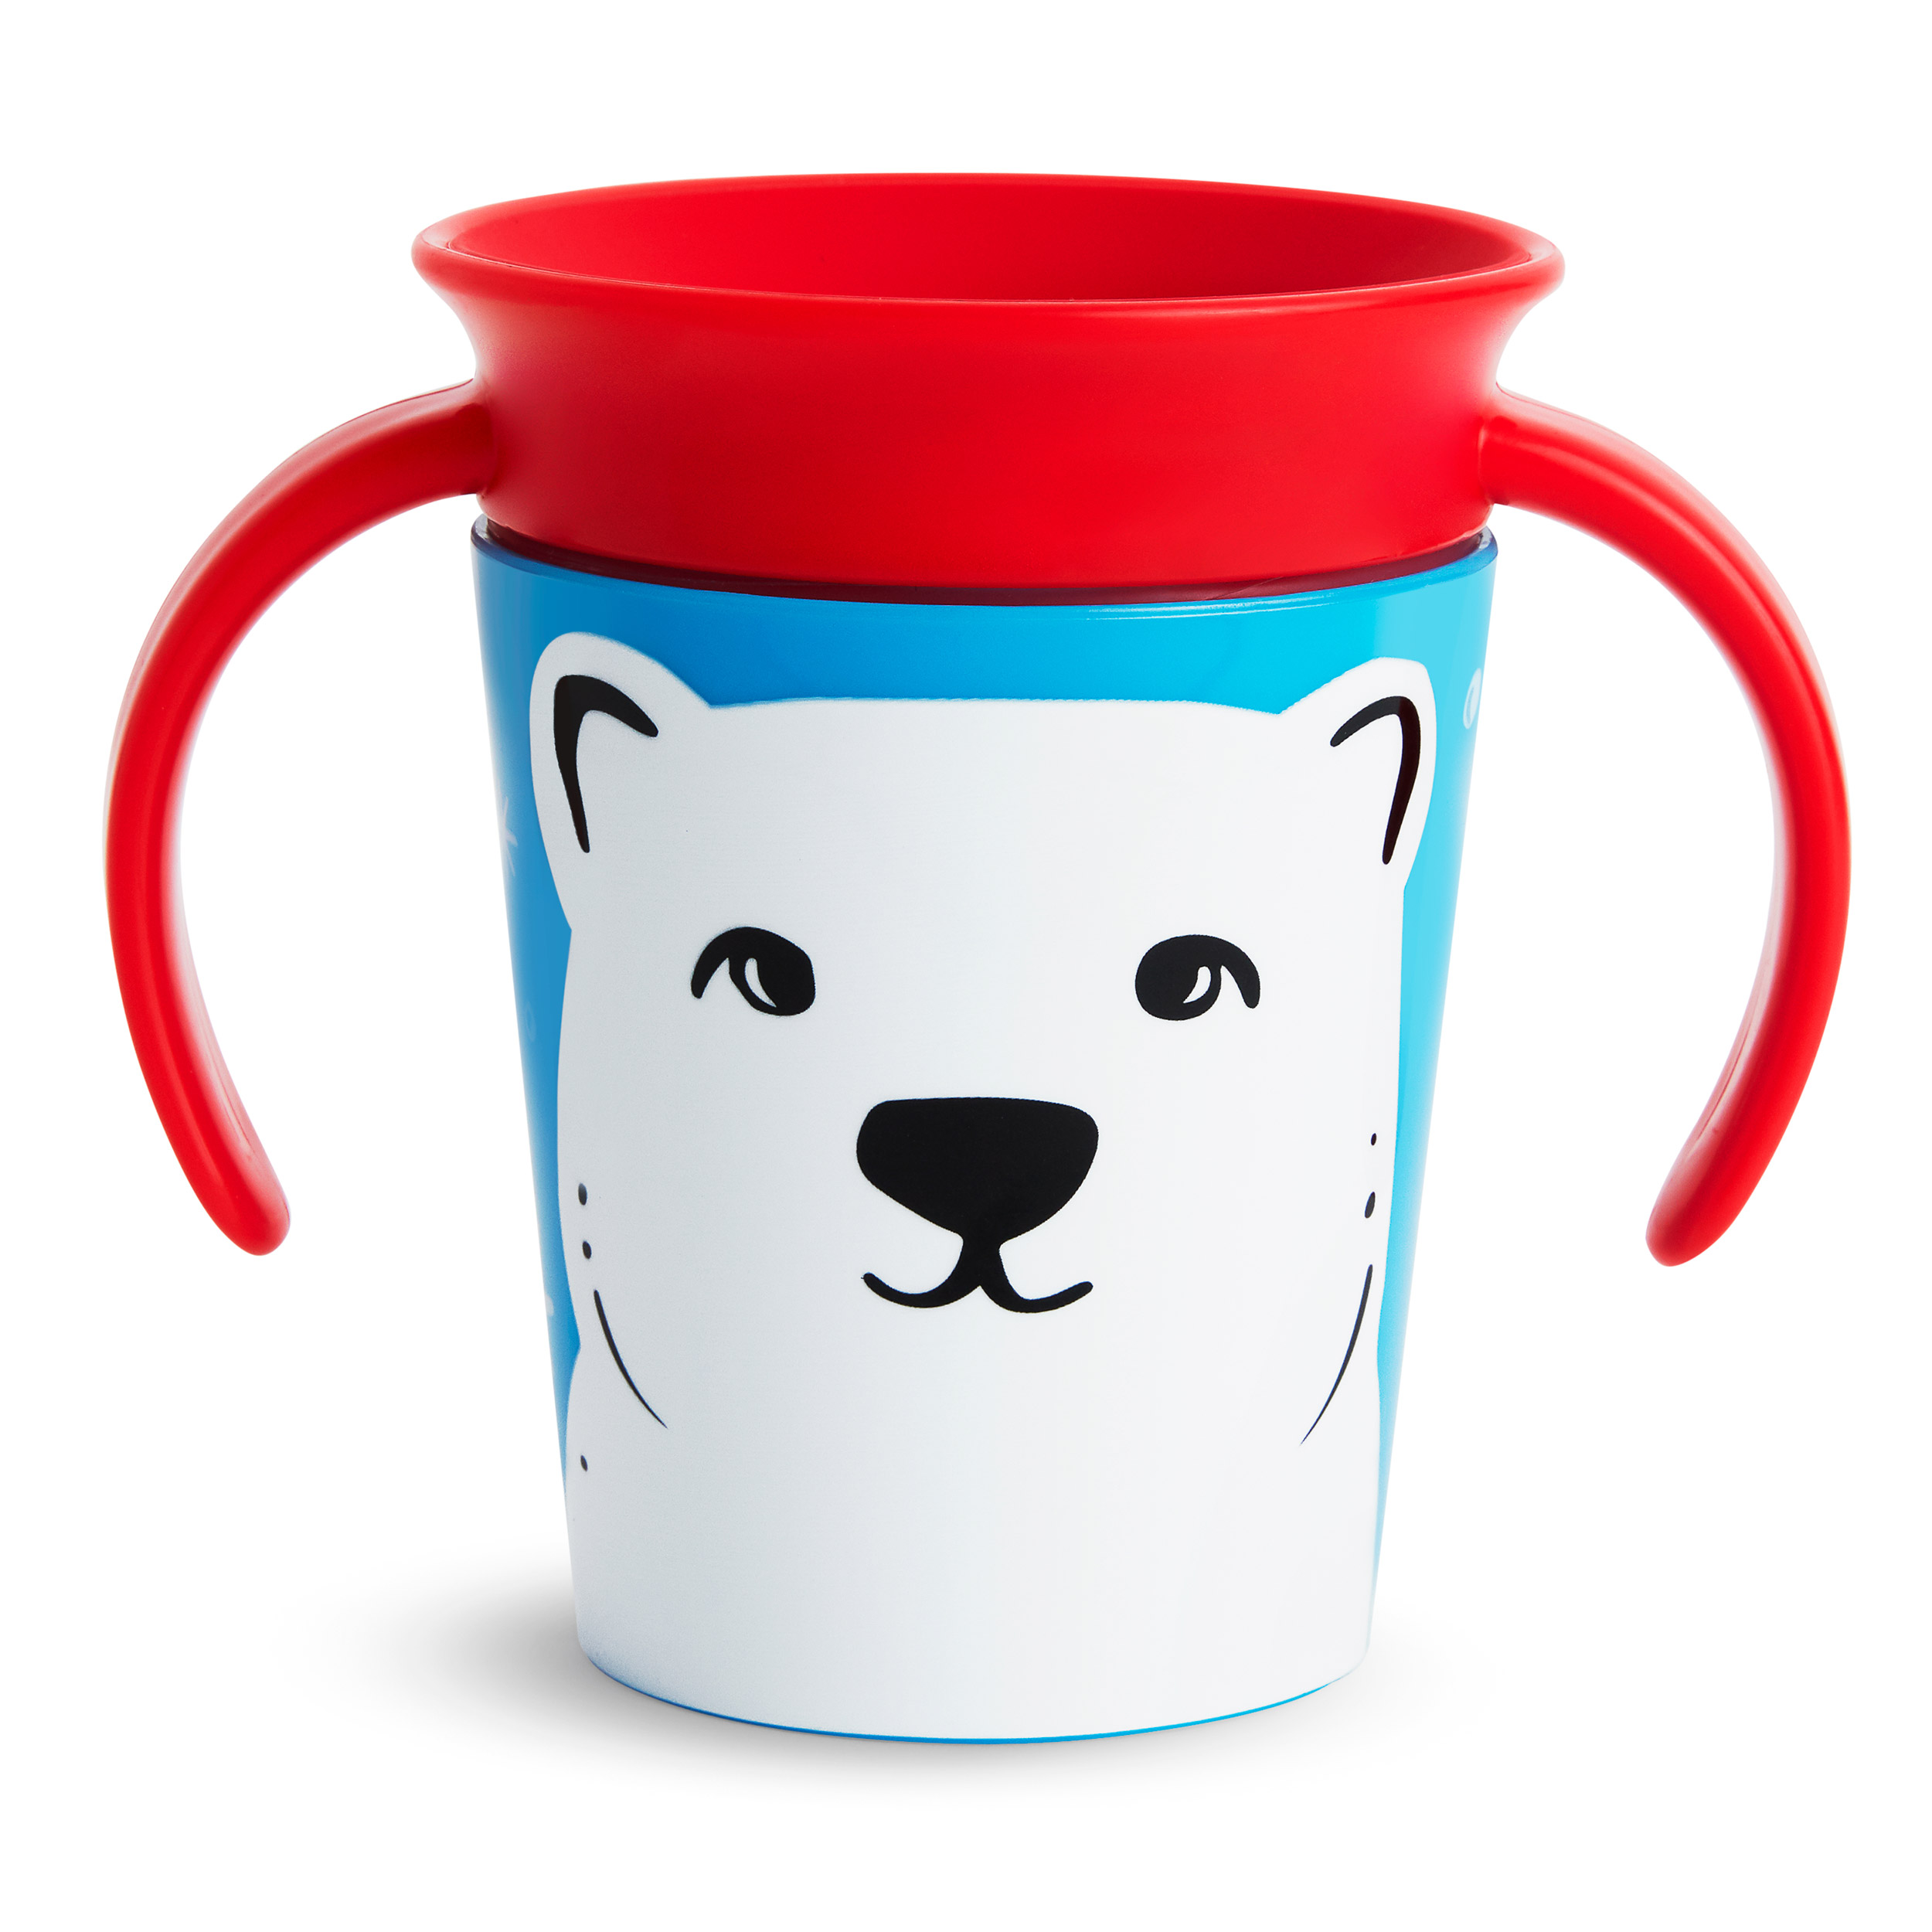 Tasse miracle 360 6M+ Ours polaire  de Munchkin